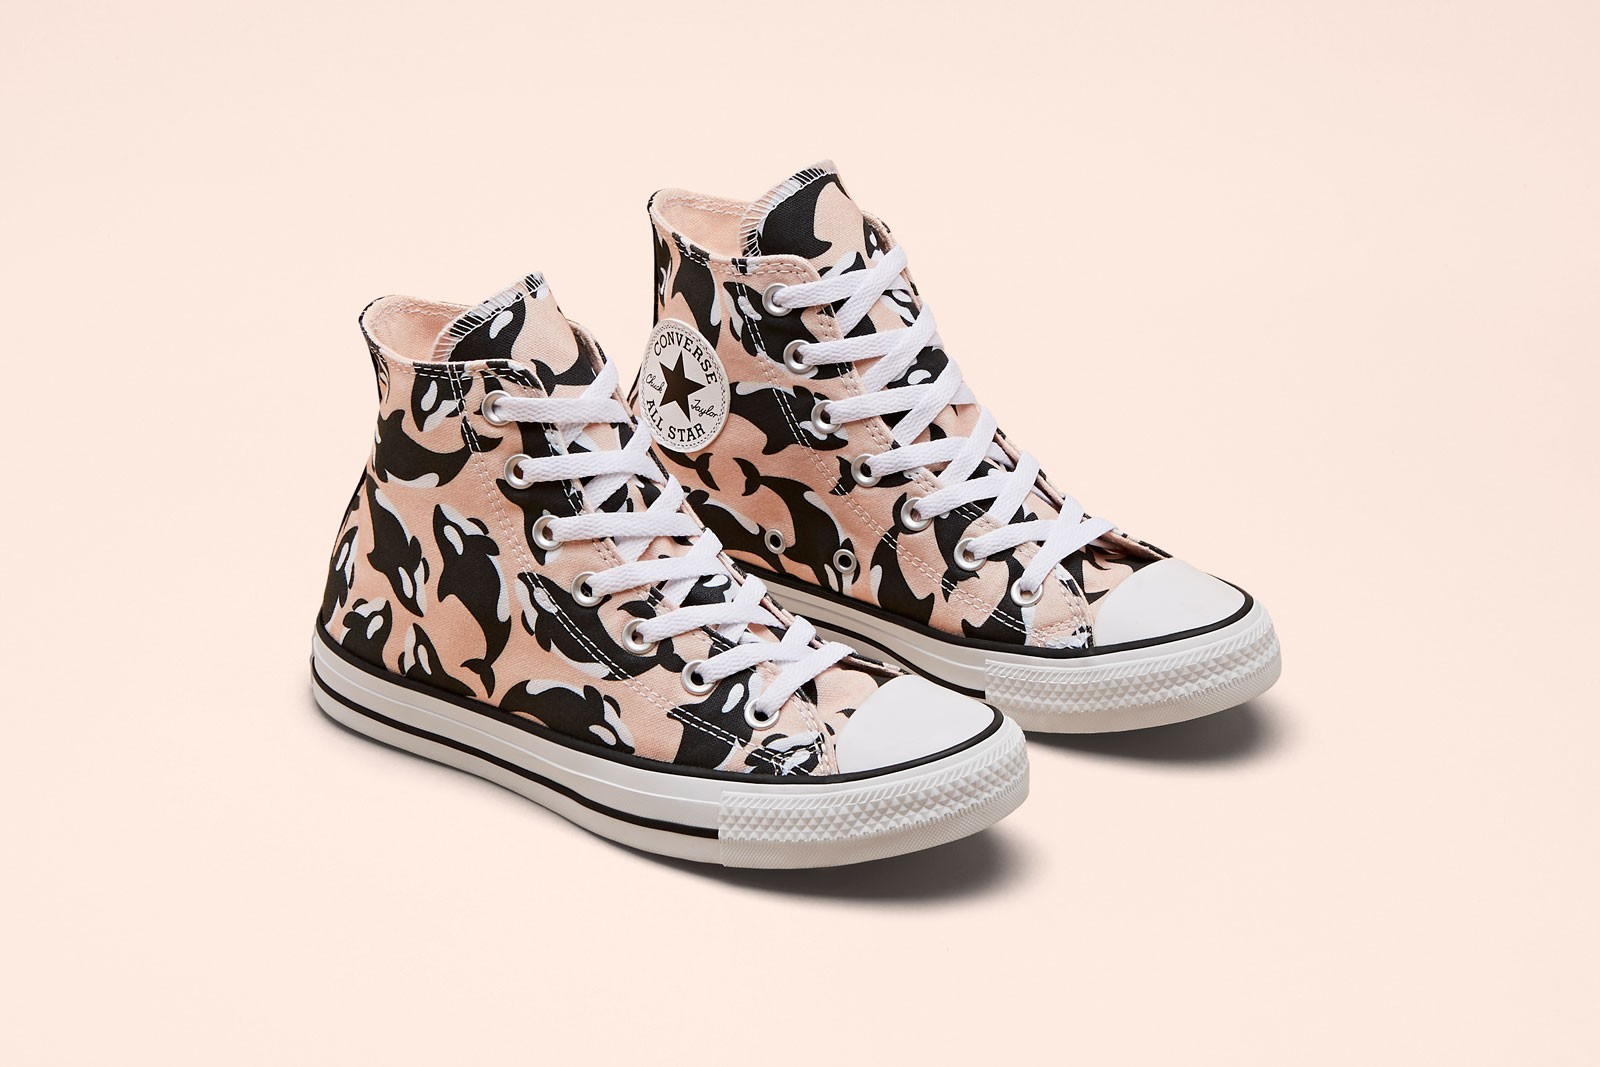 Millie Bobby Brown x Converse By You Chuck Taylor All Star Hi Whale Blue Pink Yellow Sneaker